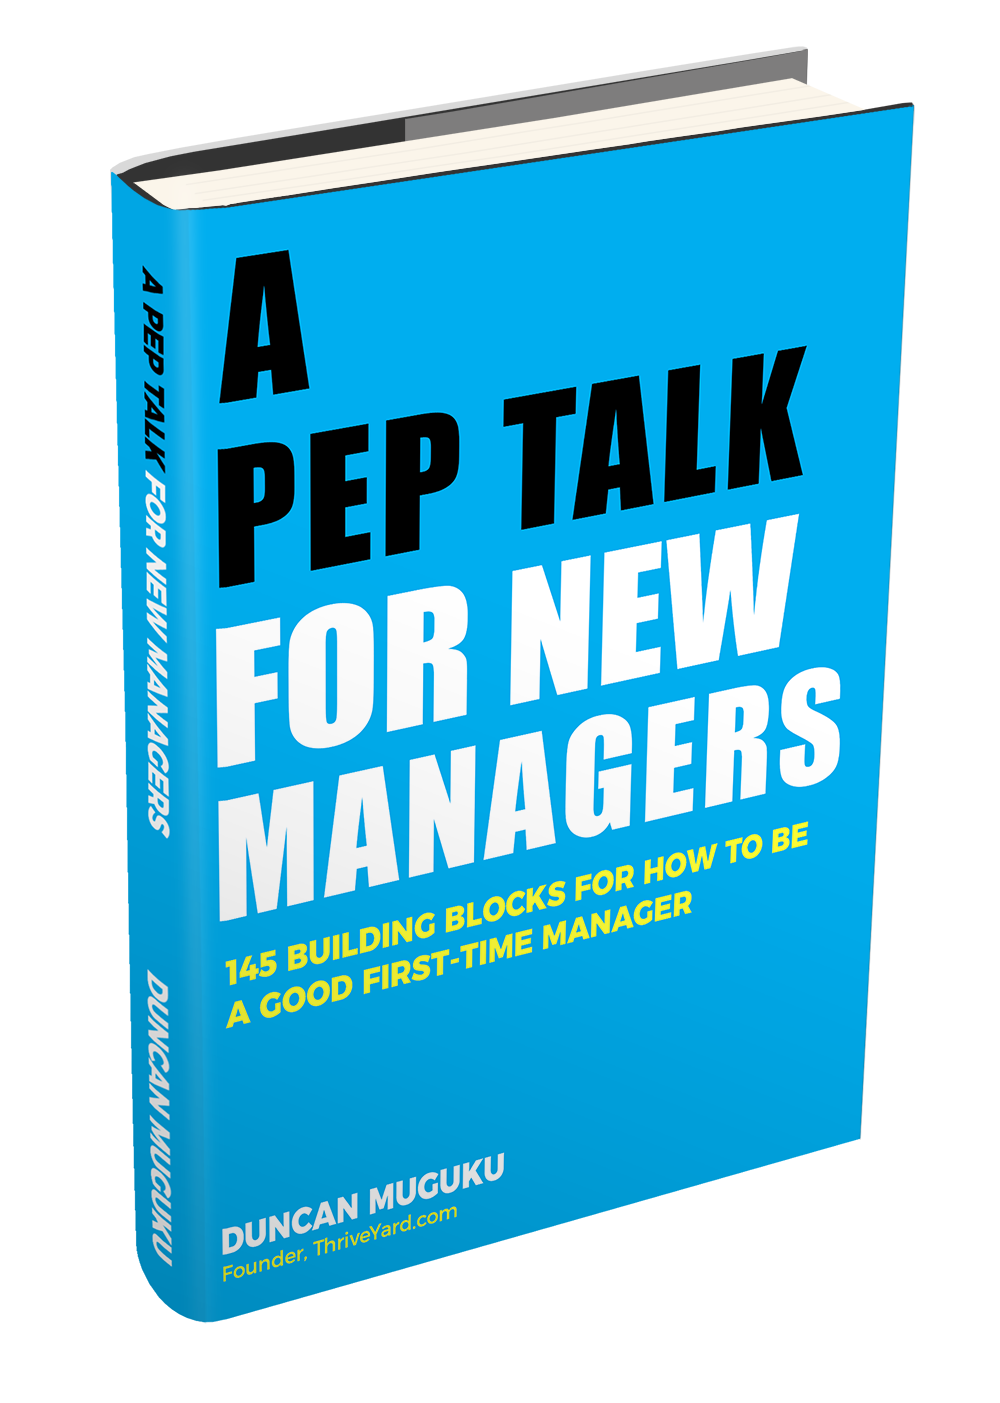 A-Pep-Talk-For-New-Managers-EBook_ThriveYard_Duncan-Muguku